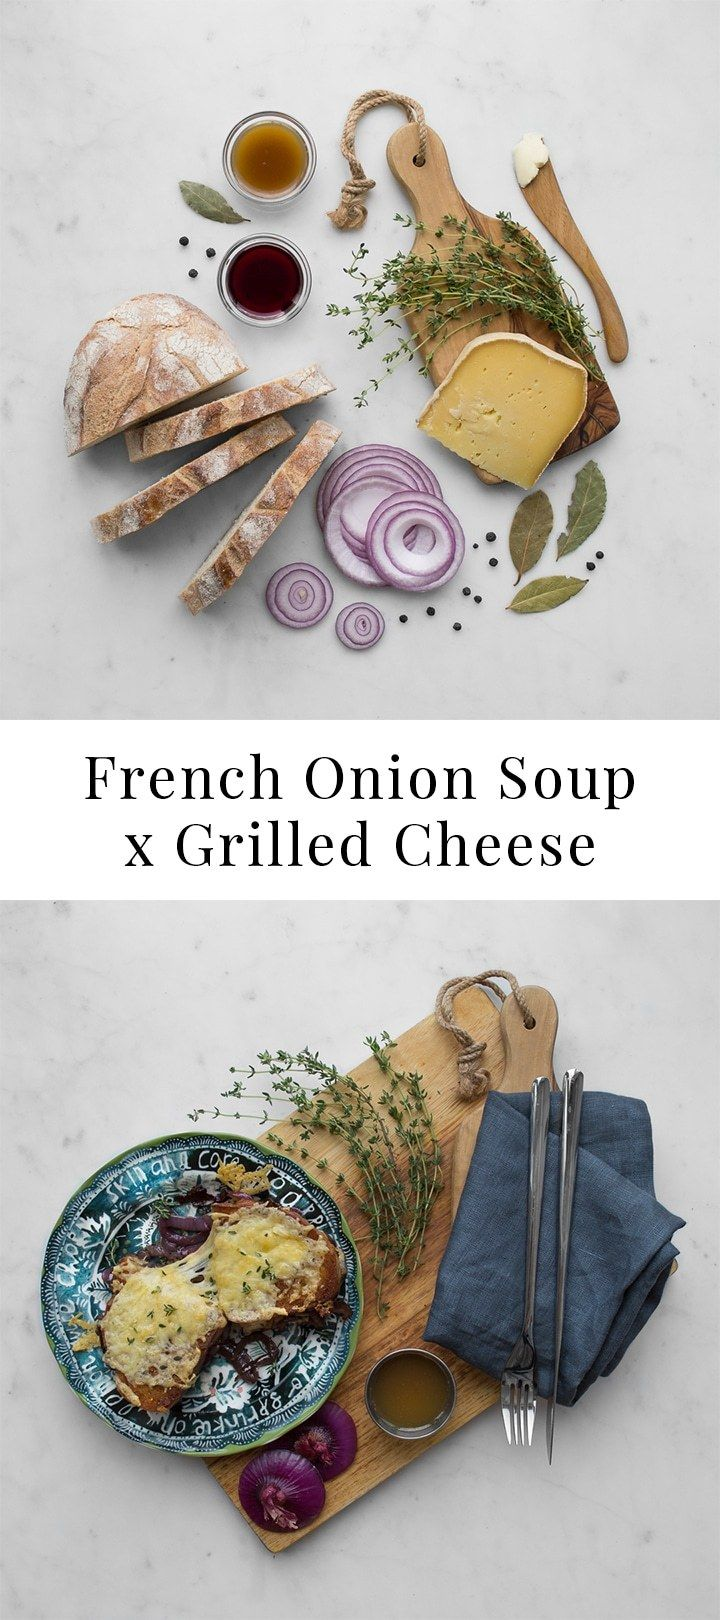 Double Decker French Onion Grilled Cheese | Chef Sous Chef